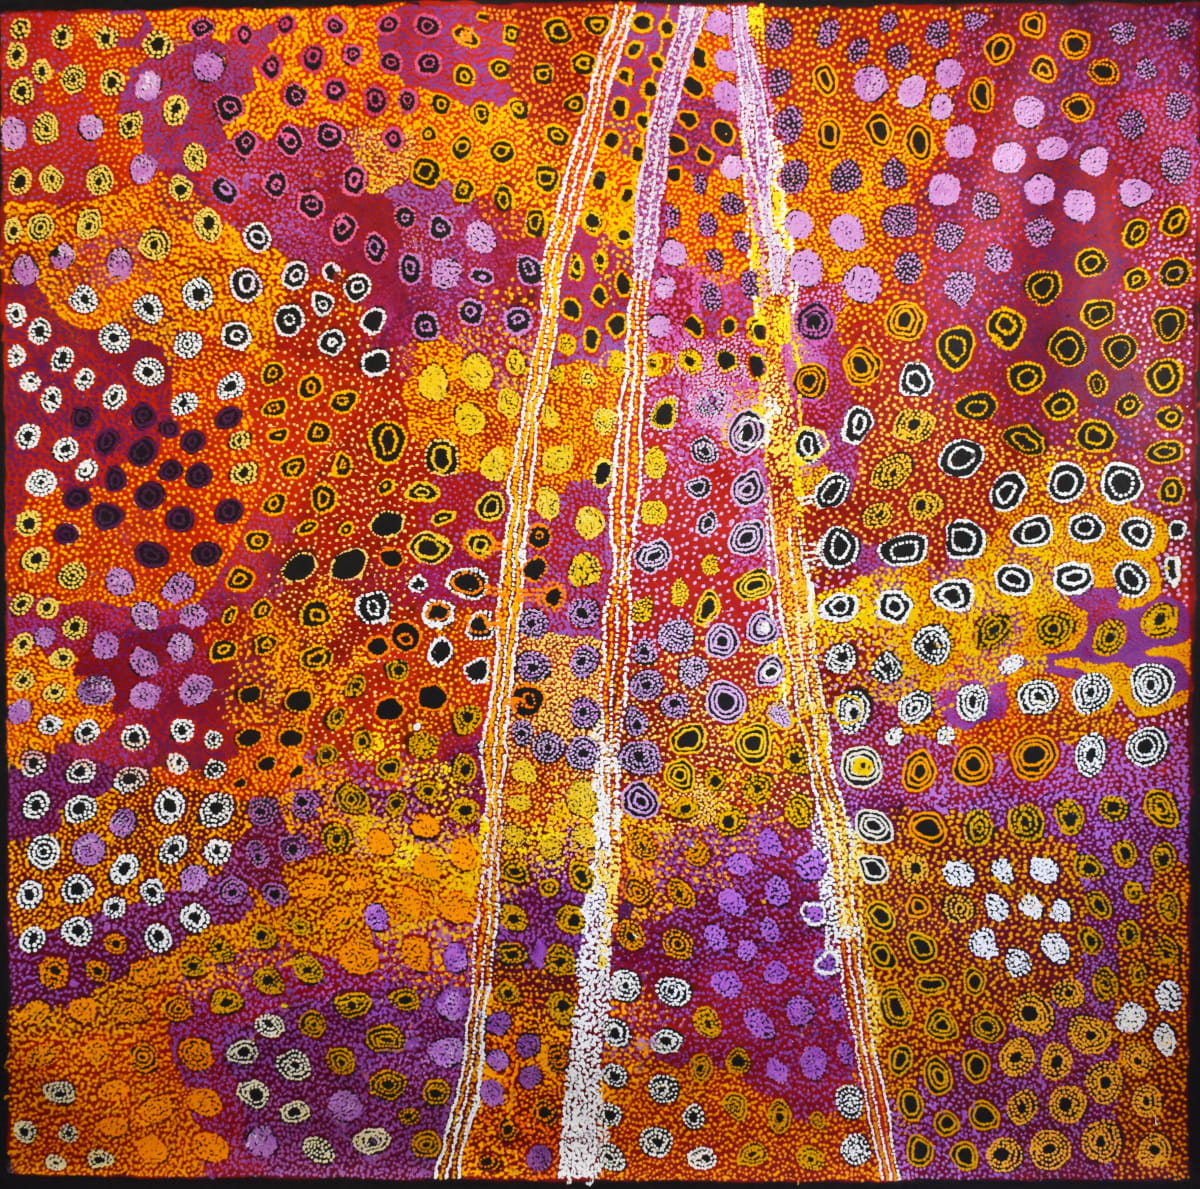 "Collaborative Work (TJALA) Seven Sisters Acrylic on Linen 197 x 198 cm (78x78"")"